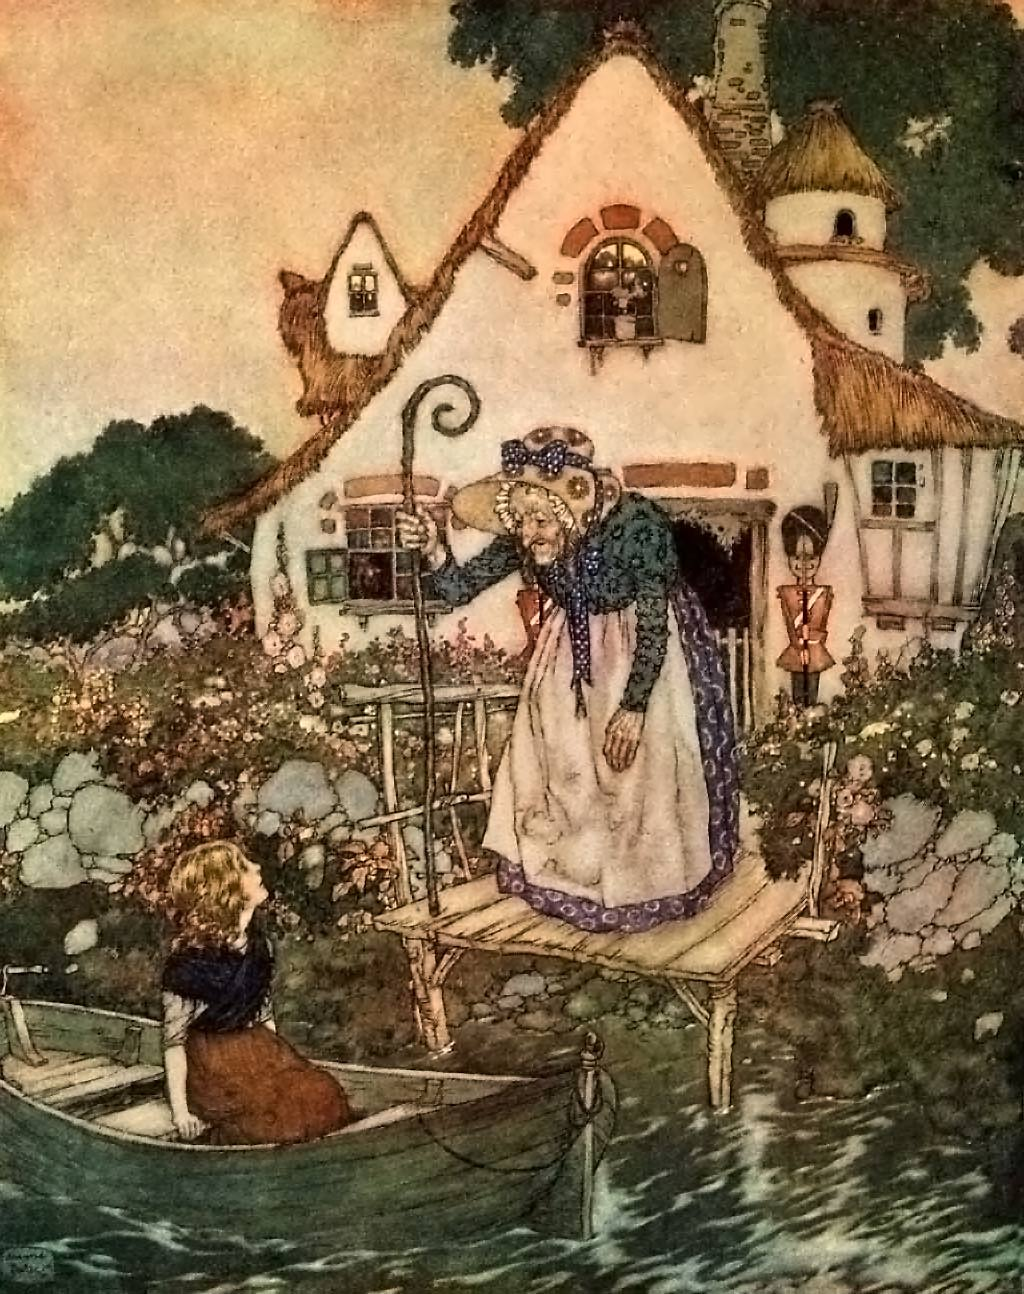 Edmund Dulac, The Garden of the Woman Learned in Magic